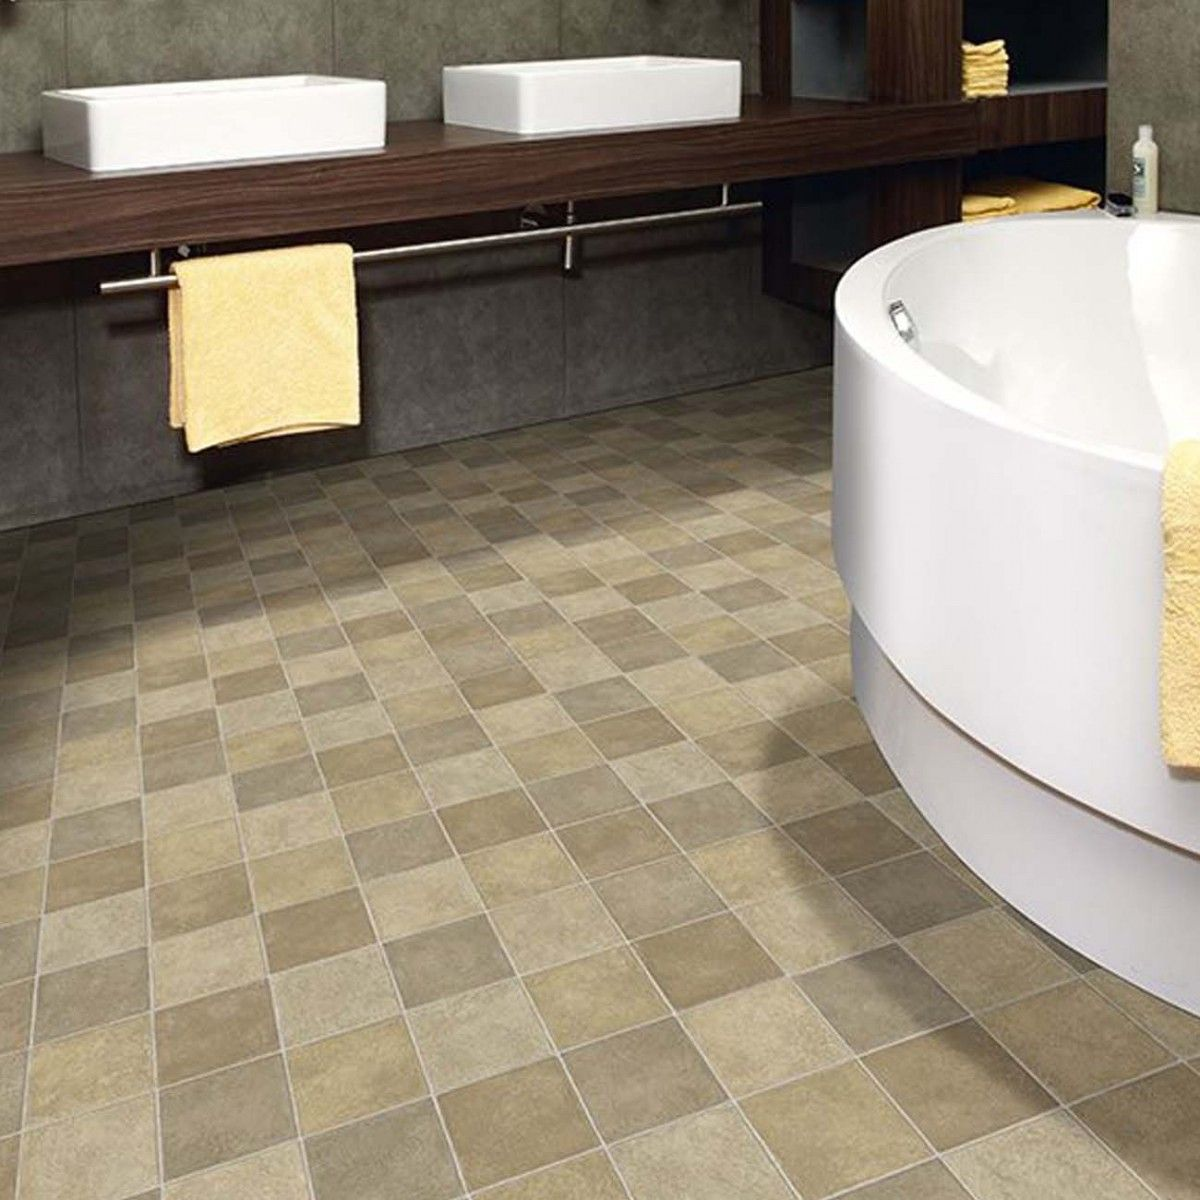 Our Vinyl Floor Has Square Shaped Blocks In Varied Hues That Resemble The Real Tile Each Measuring 33 33cm Bathroom Vinyl Vinyl Flooring Luxury Vinyl Flooring